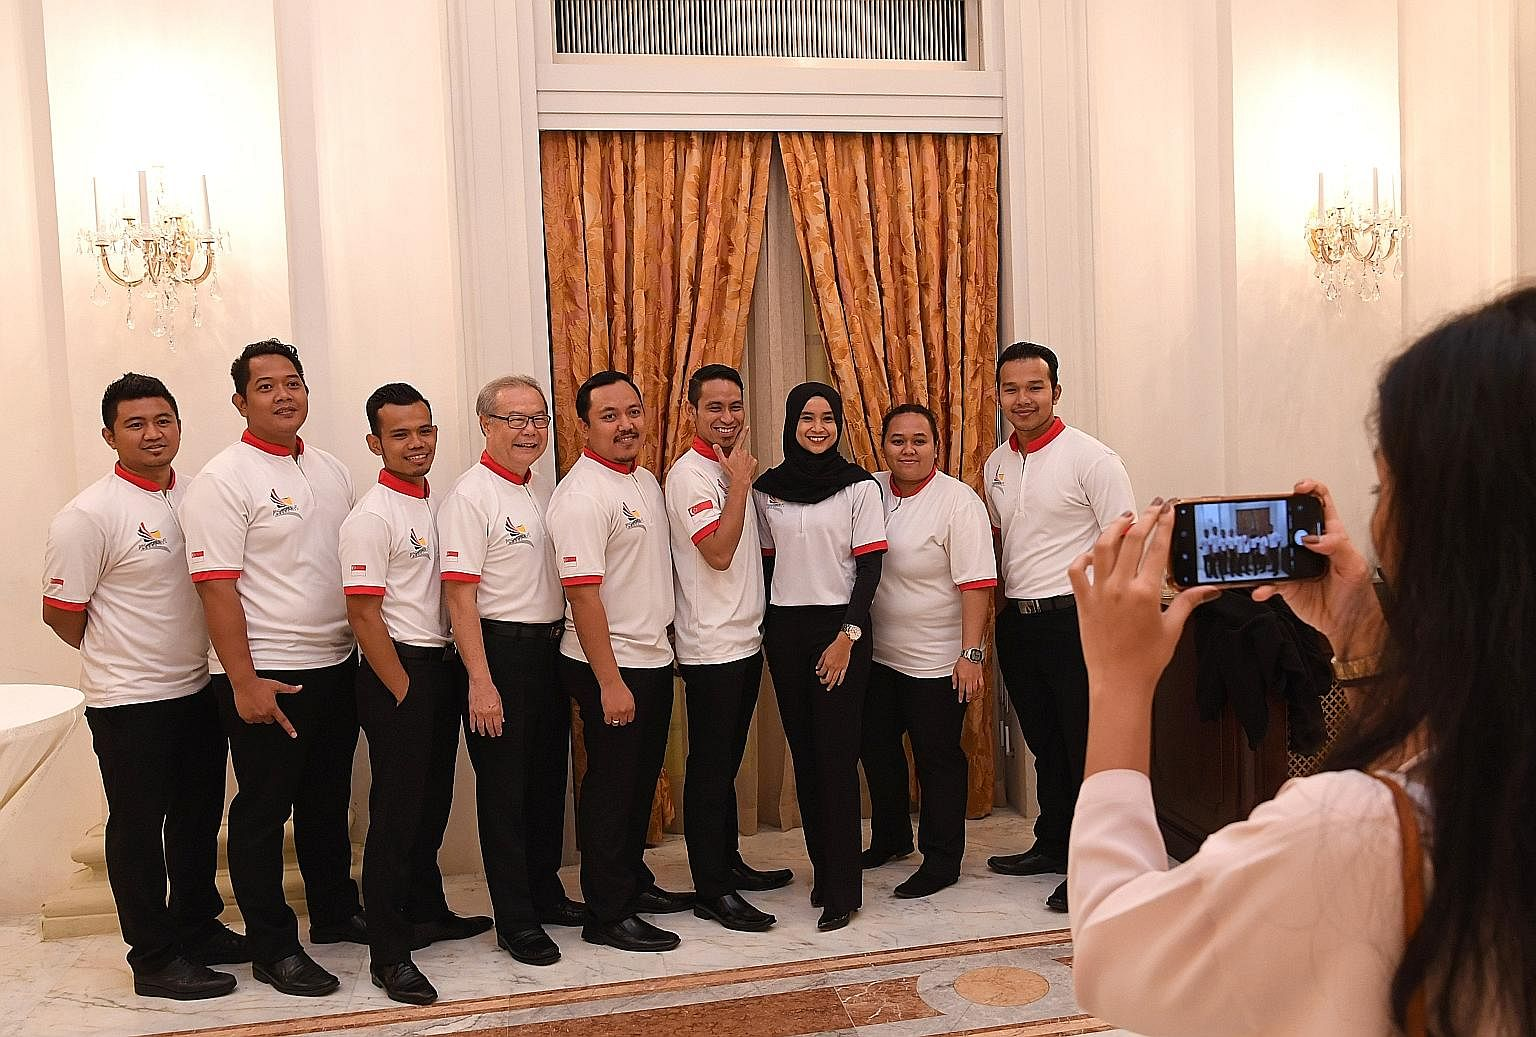 Members of the Singapore silat team posing for a photo at a dinner reception at the Istana yesterday. They were among 209 athletes and officials who were hosted by President Halimah Yacob in recognition of their efforts and achievements at five major